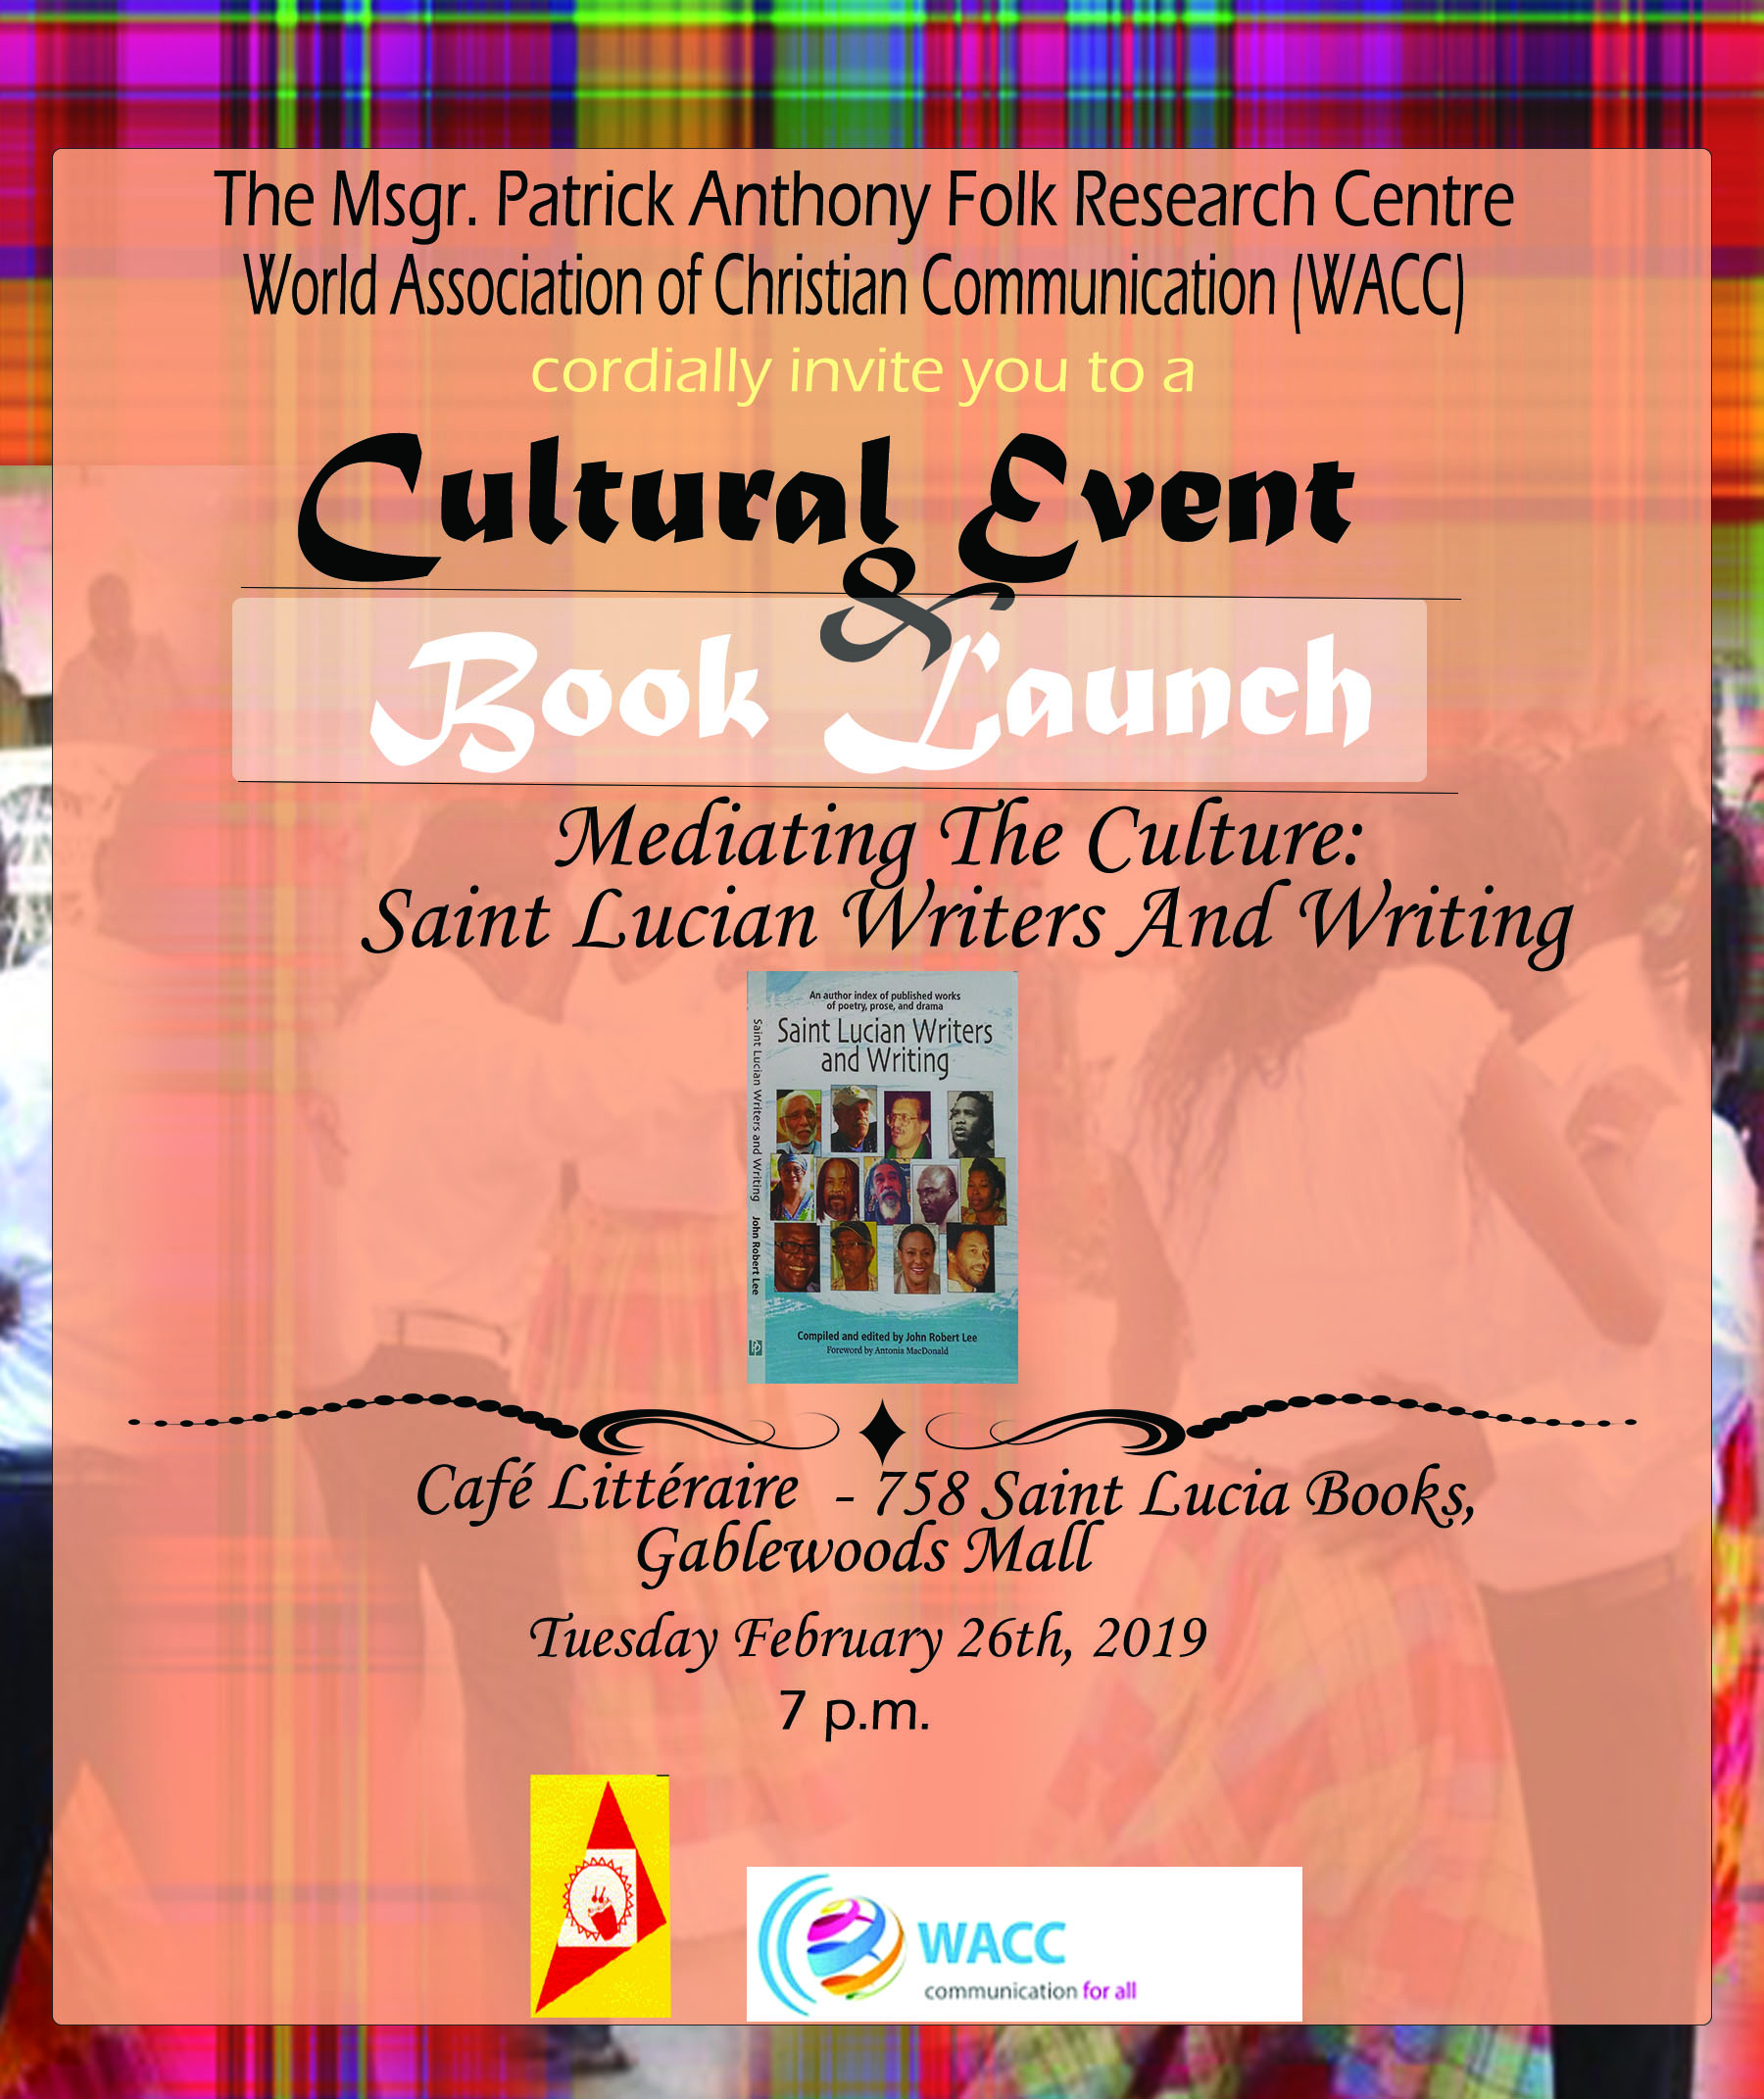 what to do in st lucia free Cultural Event and Book Launch 2019 invitation